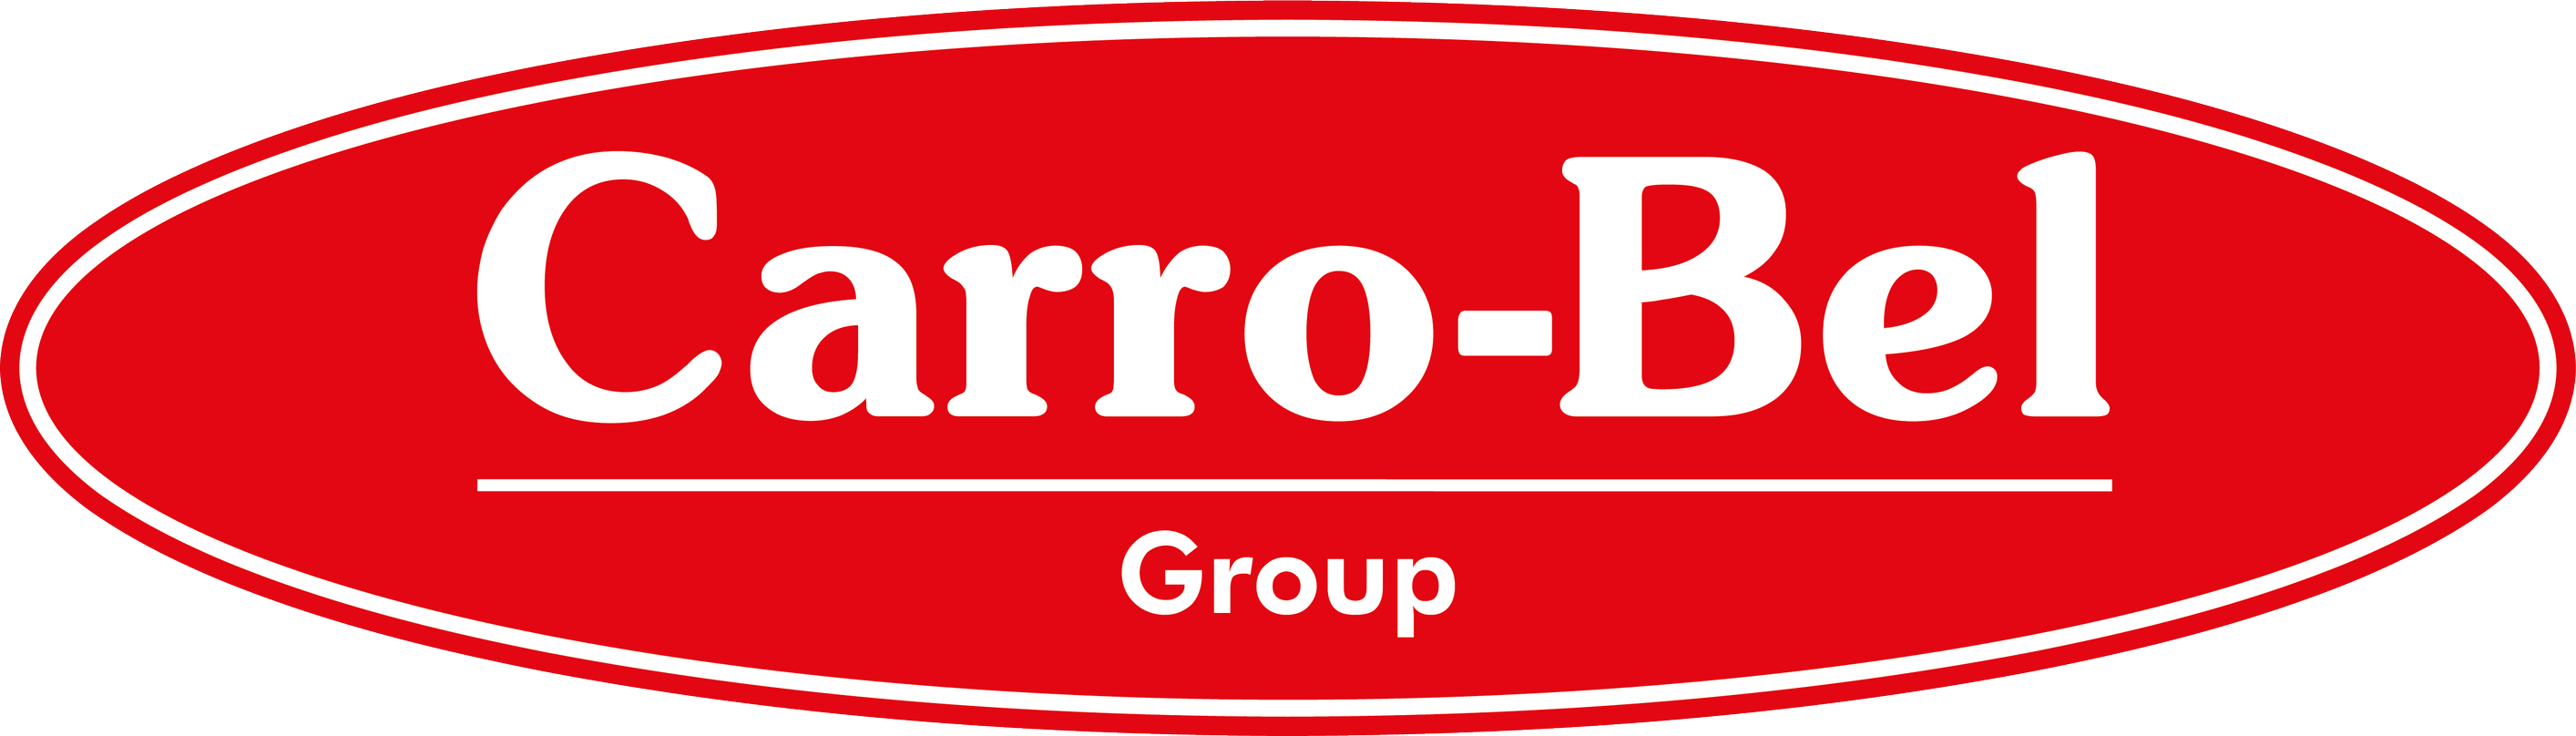 Carro-Bel Group